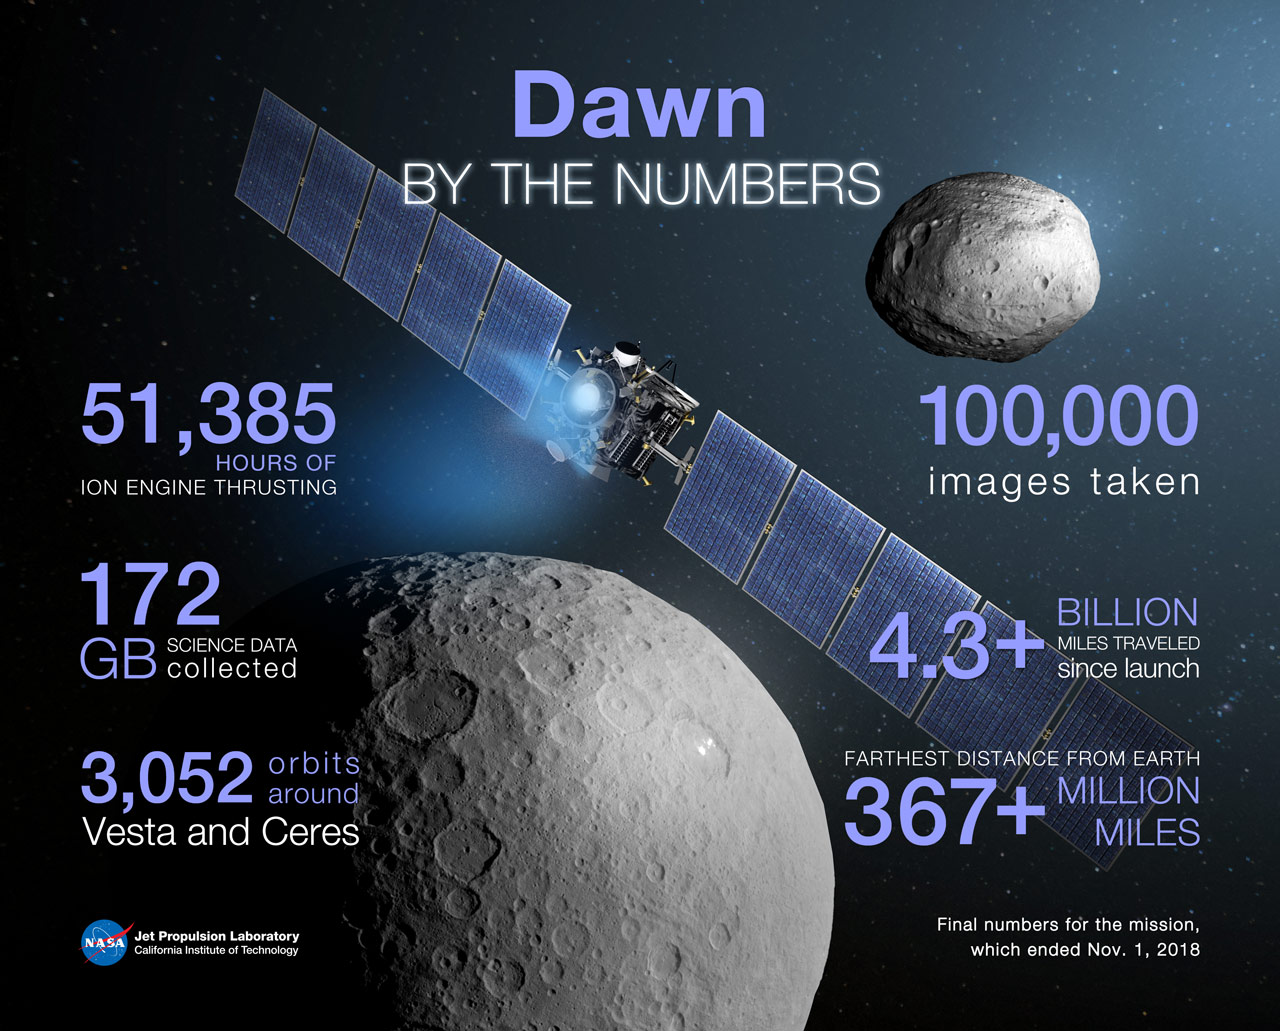 Graphic showing Dawn's impressive numbers logged during the mission.